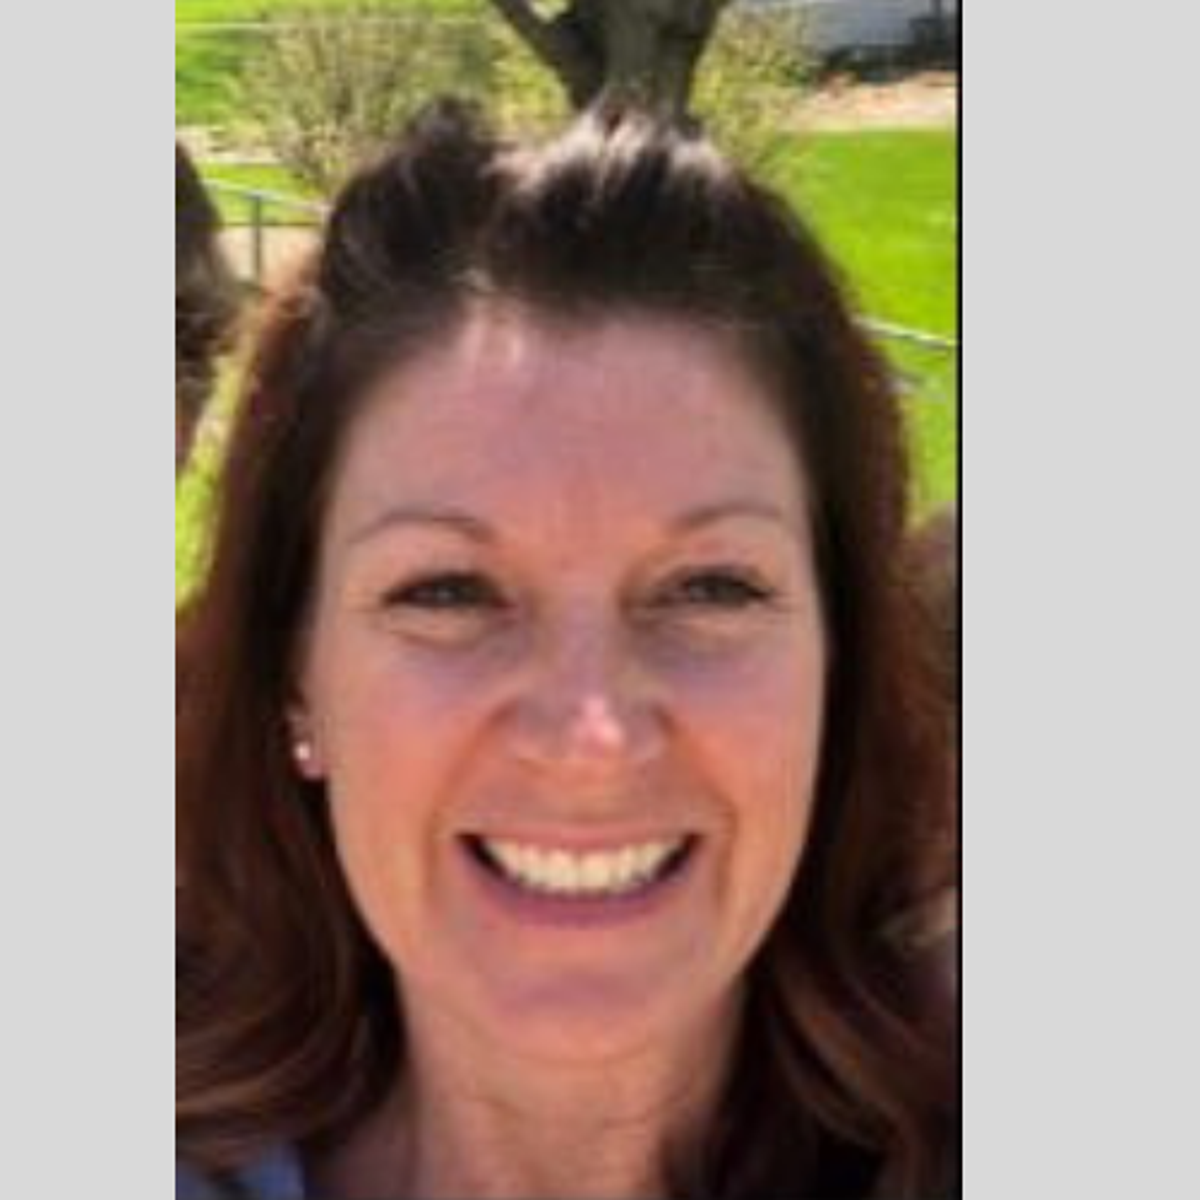 104610b99bcfc 5 questions with ... Lindsay Hale, new assistant principal at Hope ...